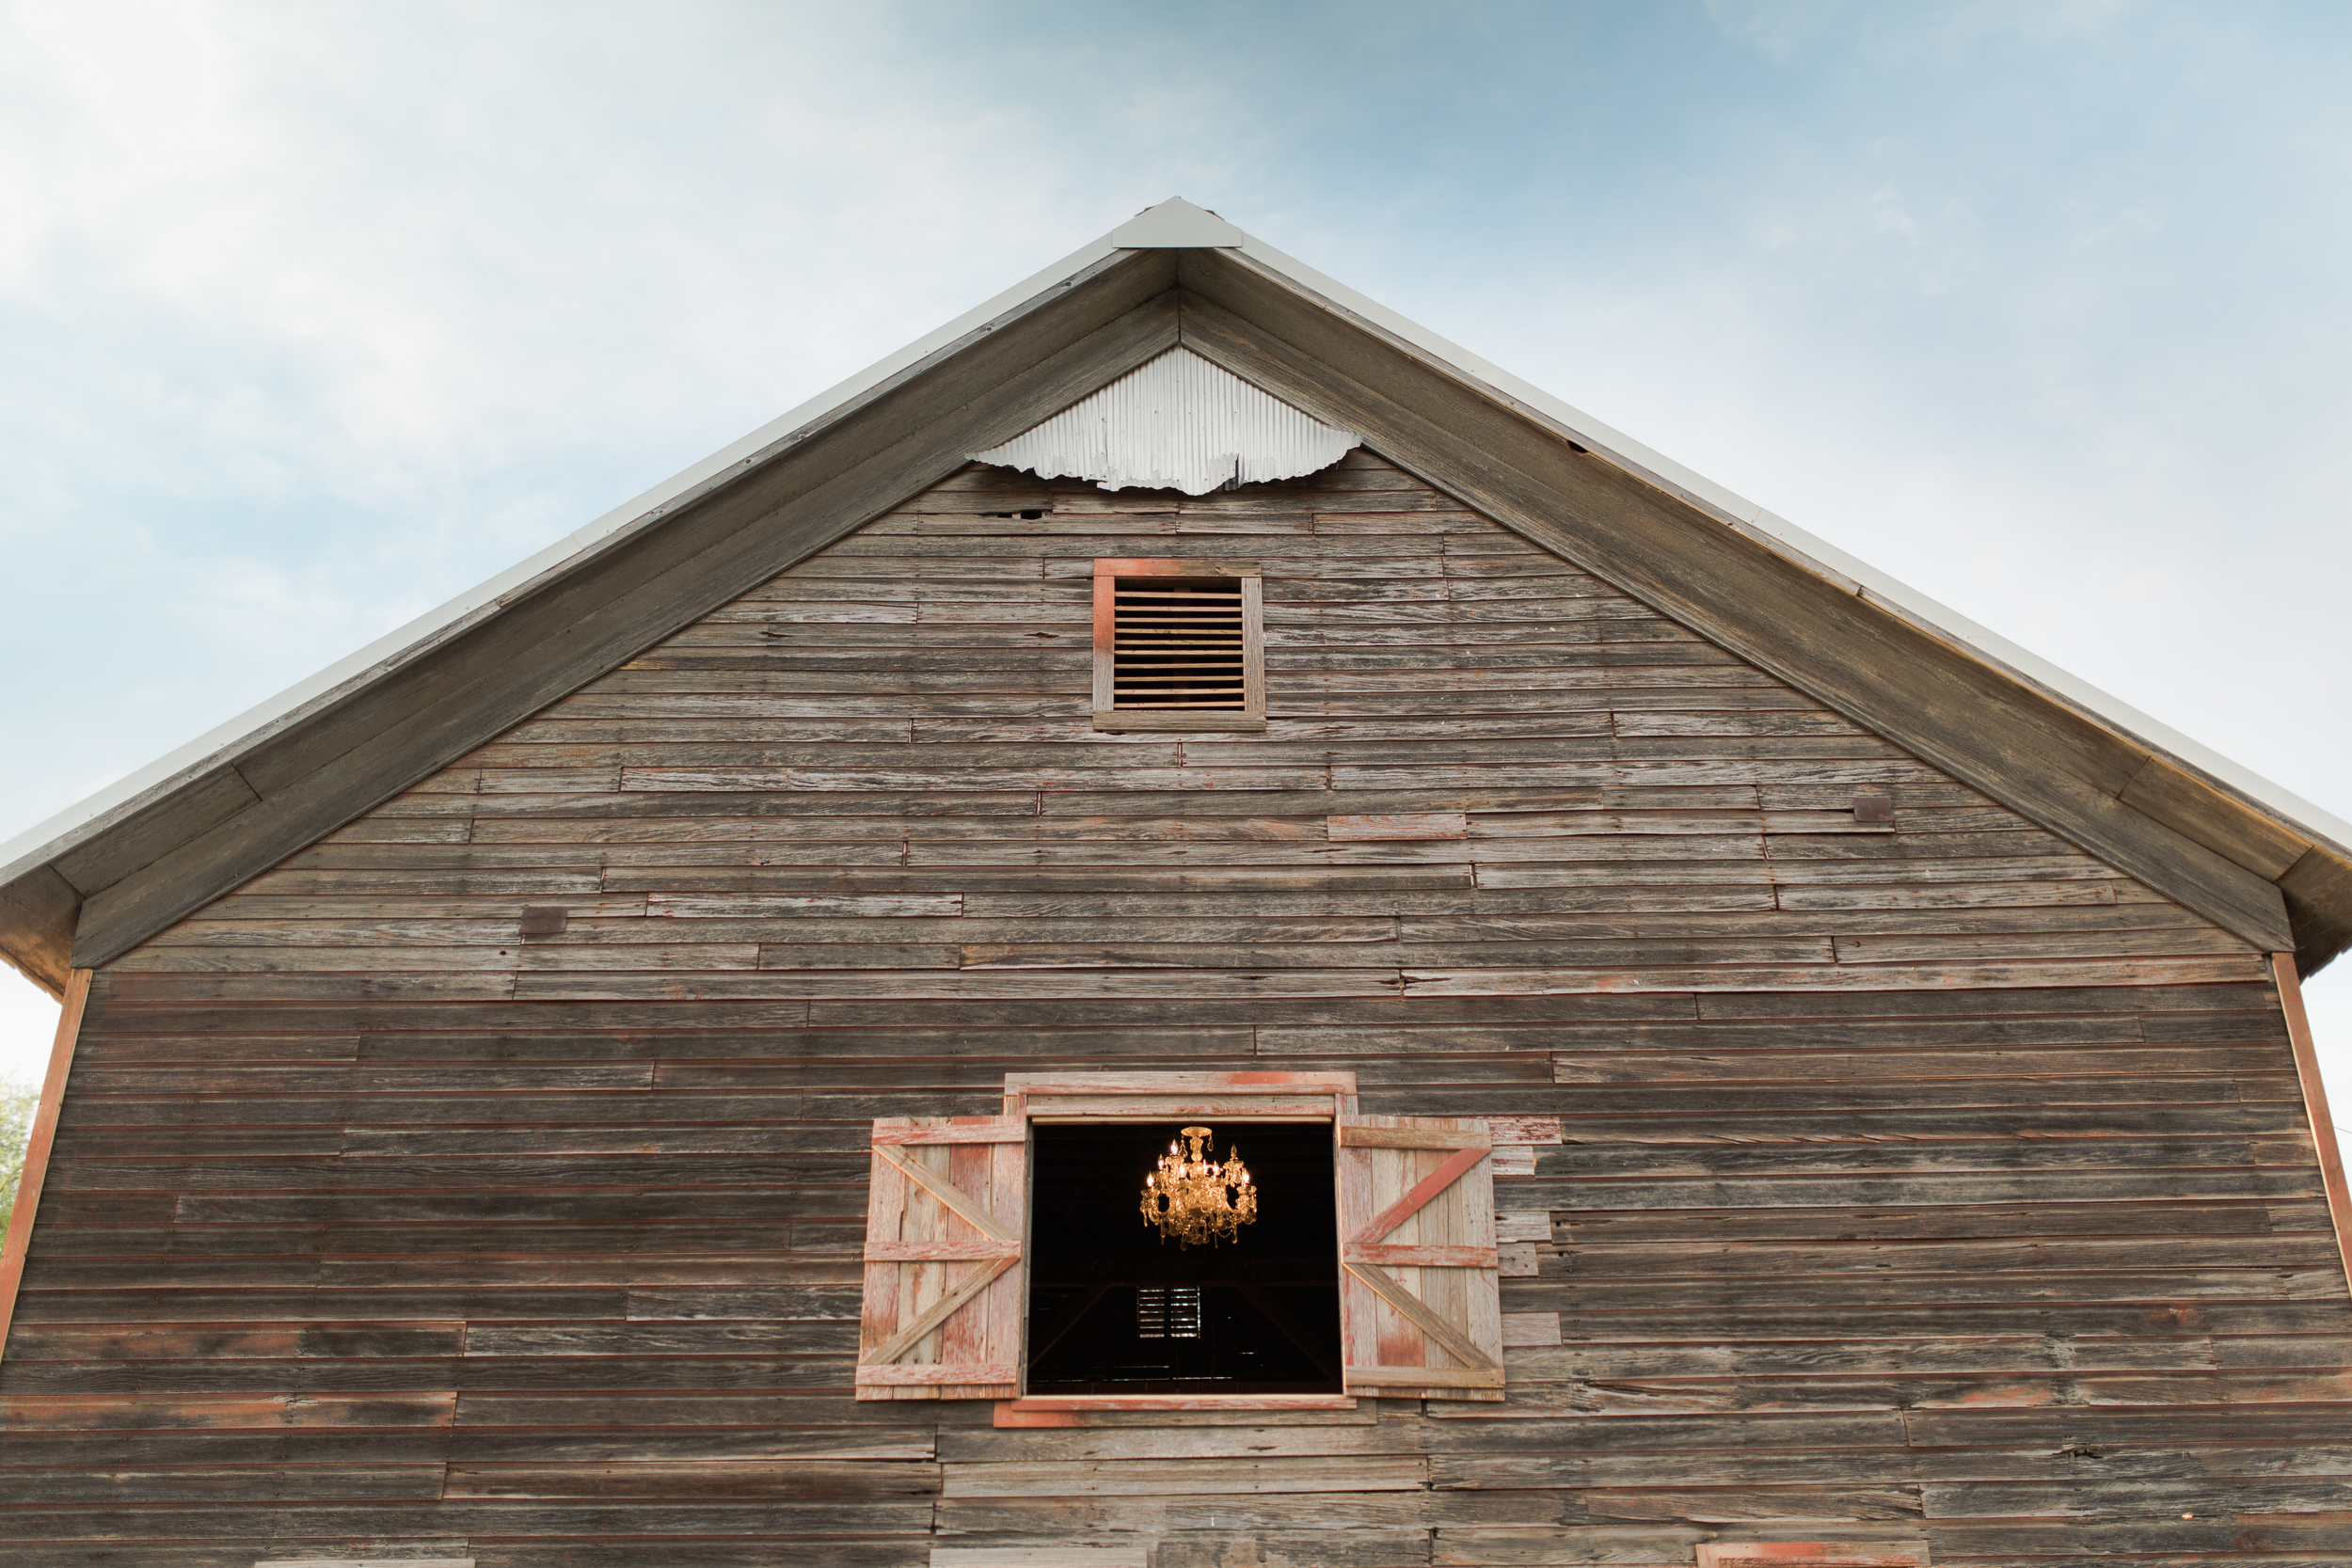 You can even see our new chandelier from the front window of the barn!